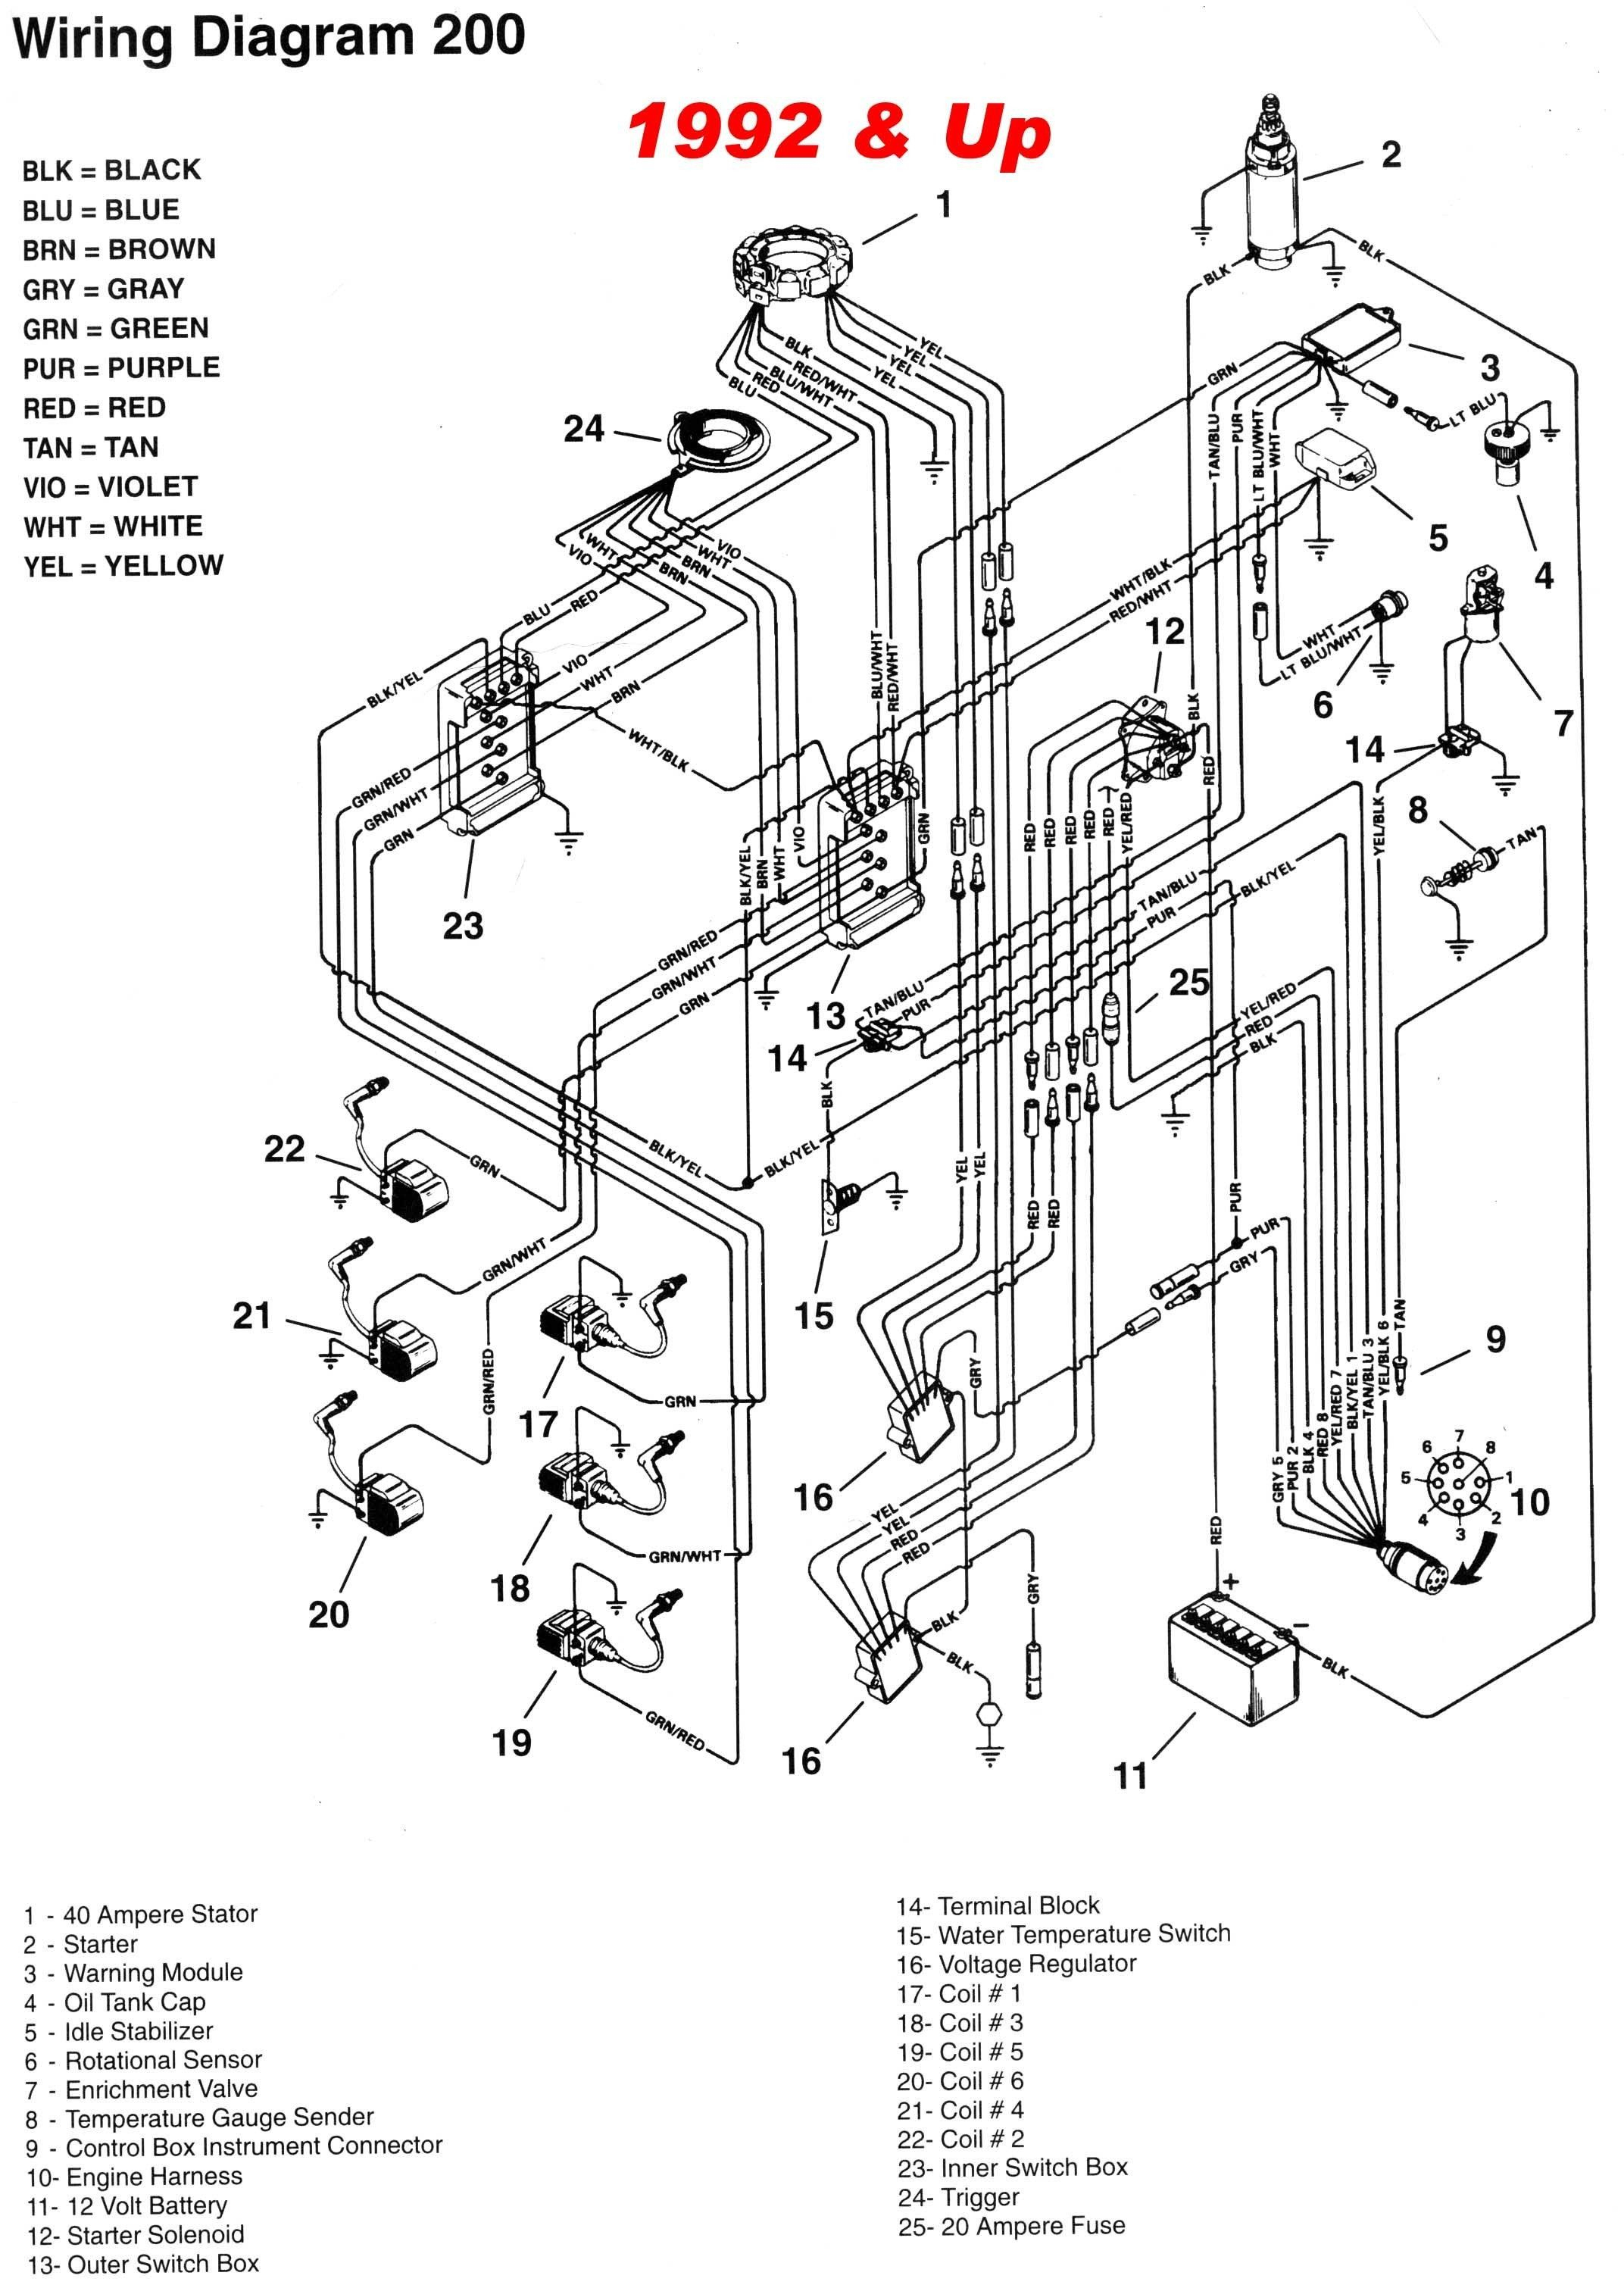 99 Civic Ignition Wiring Diagram Diagrams Instructions Ripping - Mercruiser Ignition Wiring Diagram